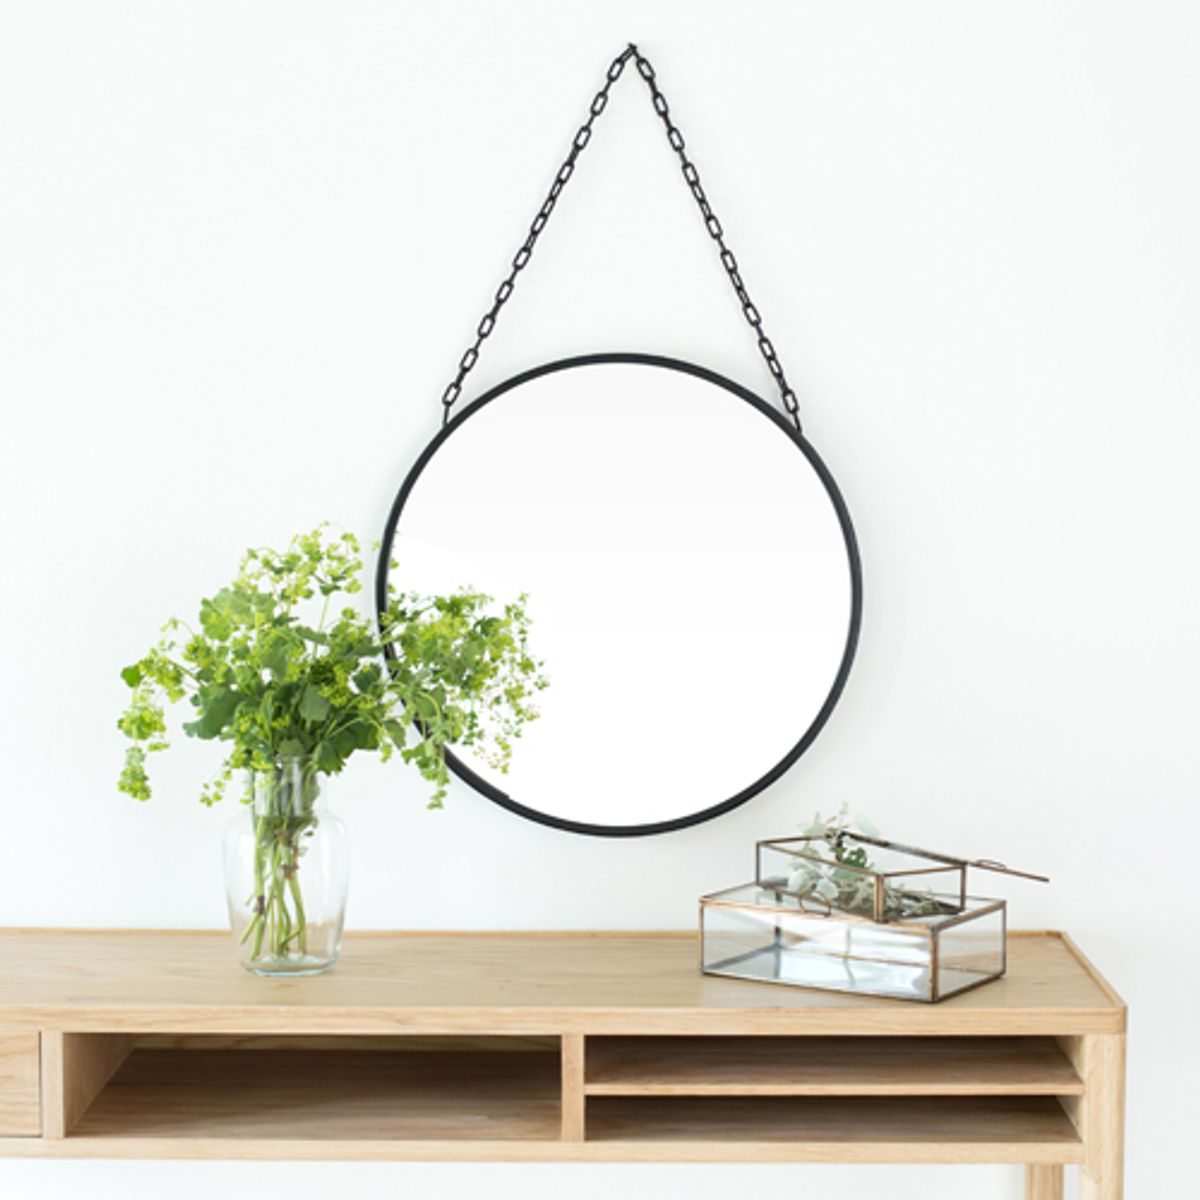 miroir rond en m tal noir mat avec cha ne 50 cm decoclico. Black Bedroom Furniture Sets. Home Design Ideas